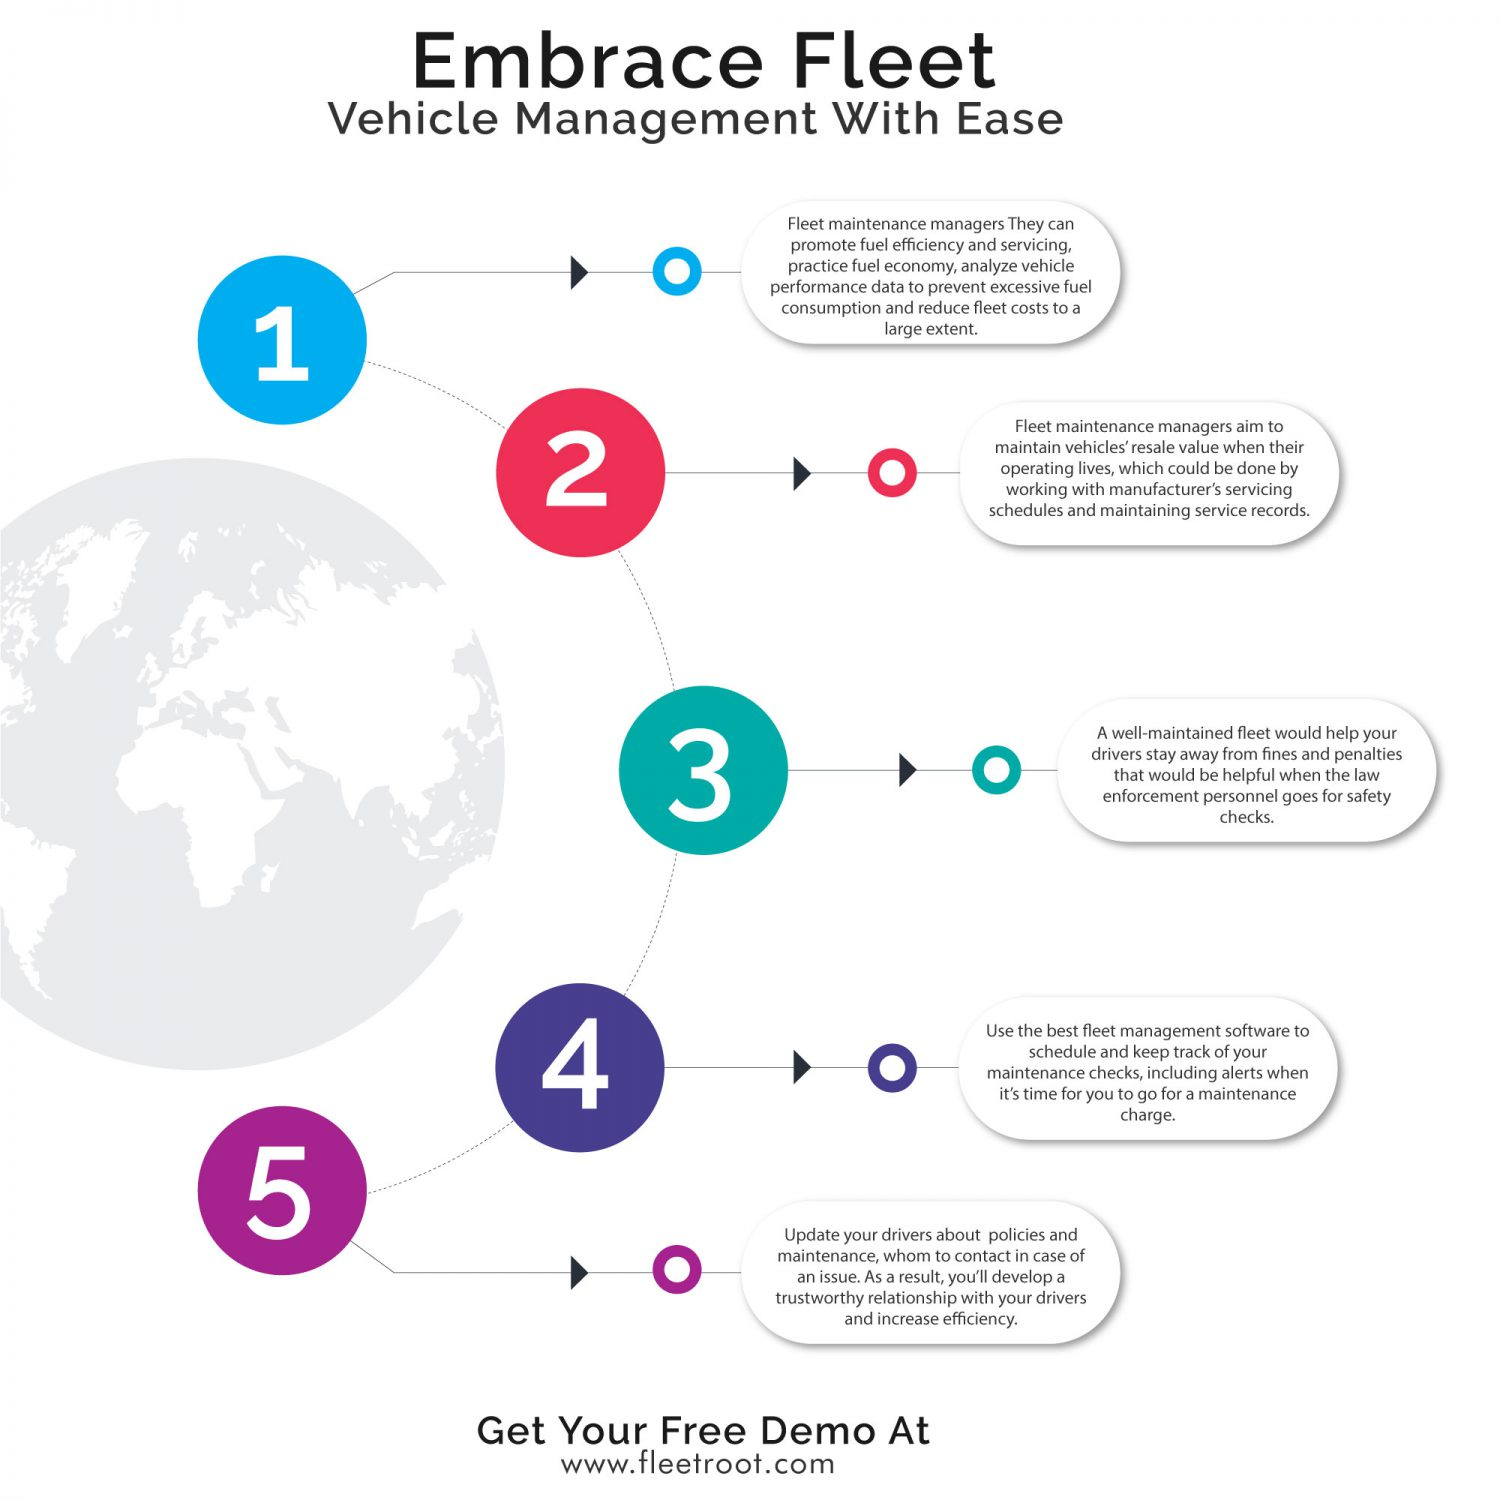 How To Embrace Fleet Vehicle Management With Ease | Fleetroot